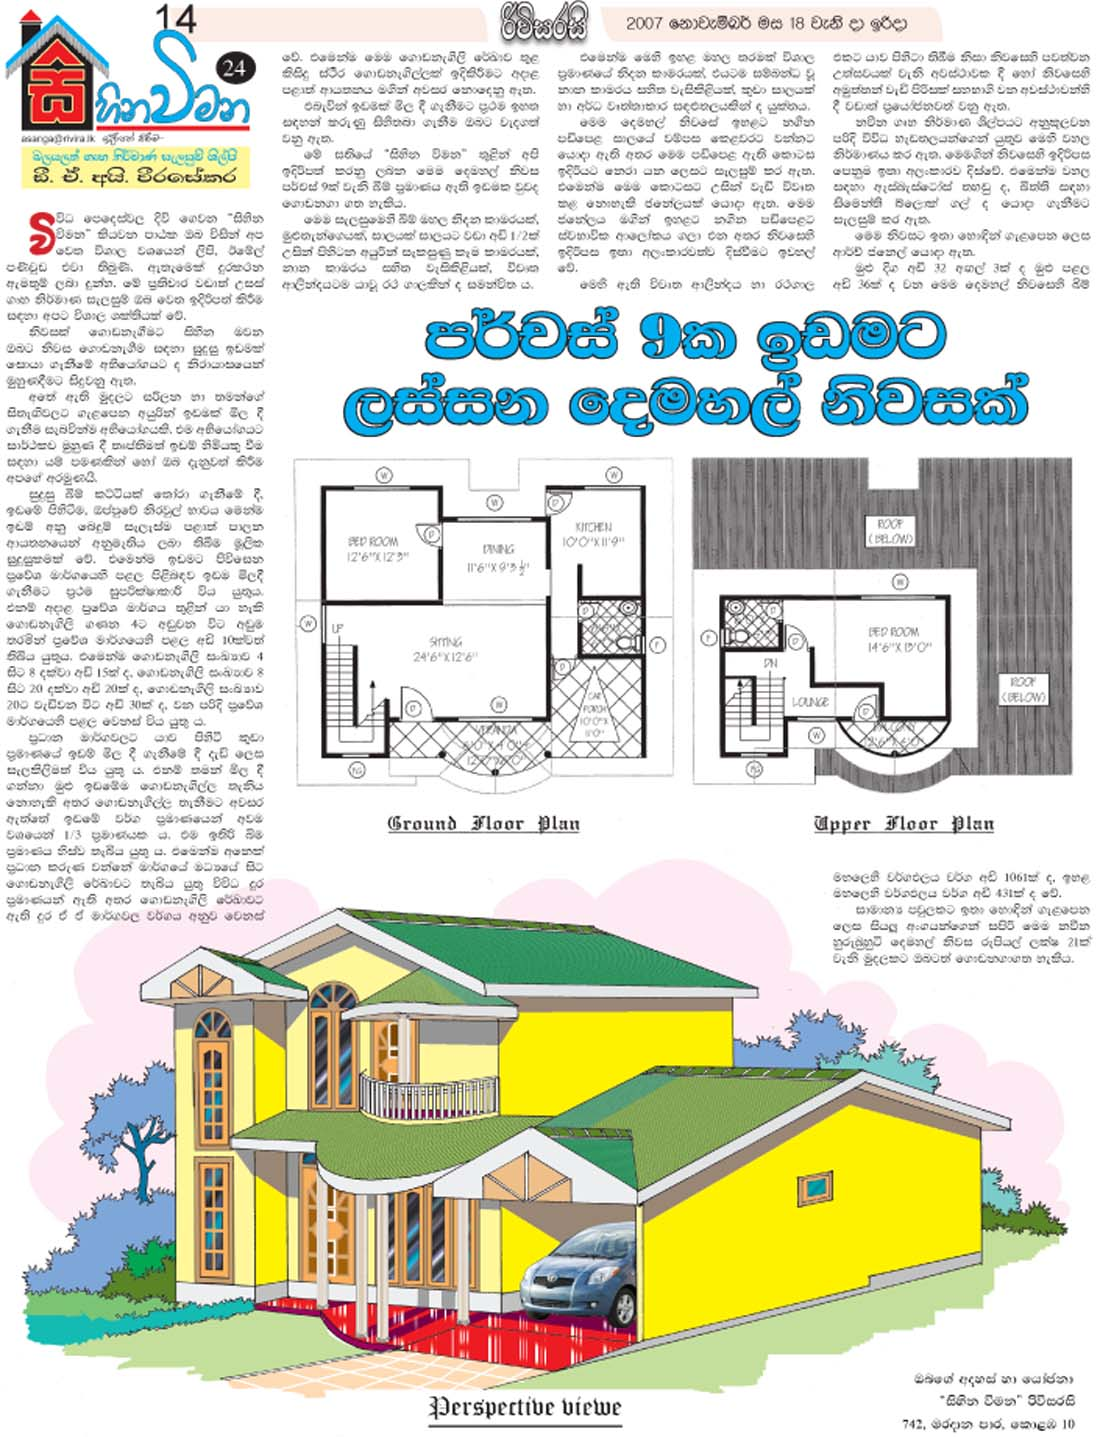 House plans and design architectural house plans sri lanka for Sri lankan homes plans